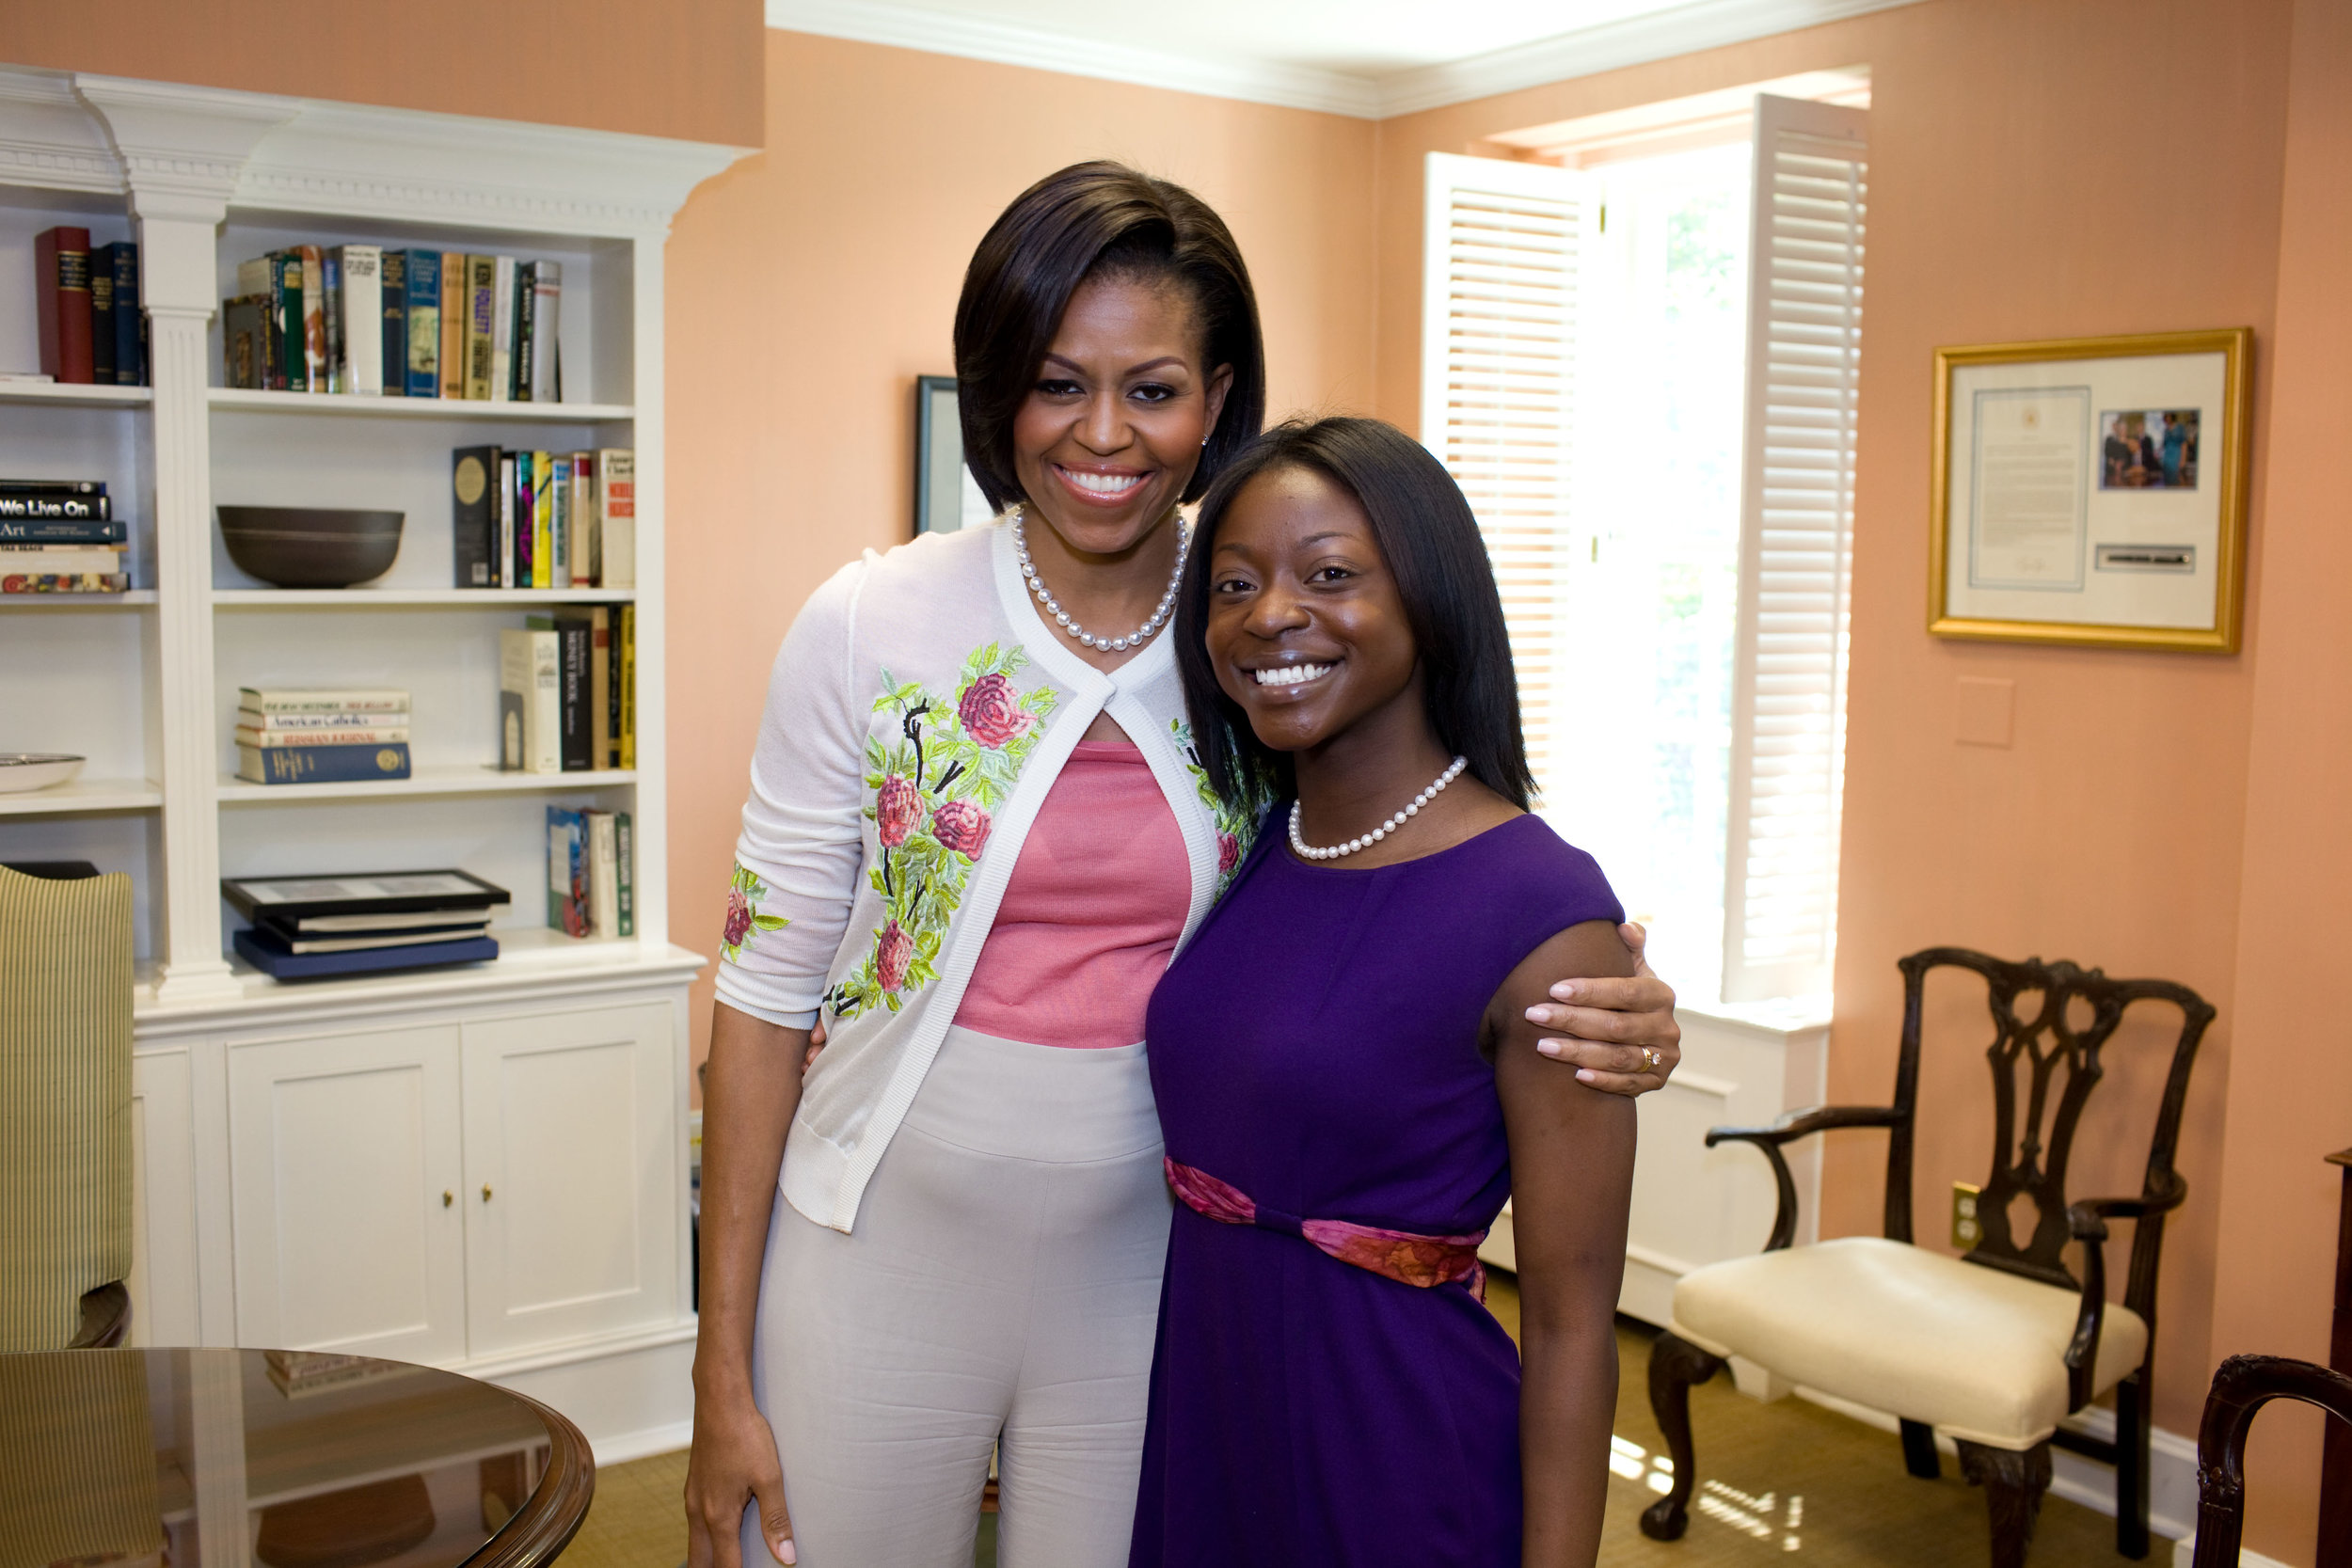 Over the past 10 years, I have built a global career. - During my career I have served as a Fulbright Scholar in Malaysia, worked in the Office of First Lady Michelle Obama in the White House, and worked on more than 6 different political campaigns as a communications consultant.